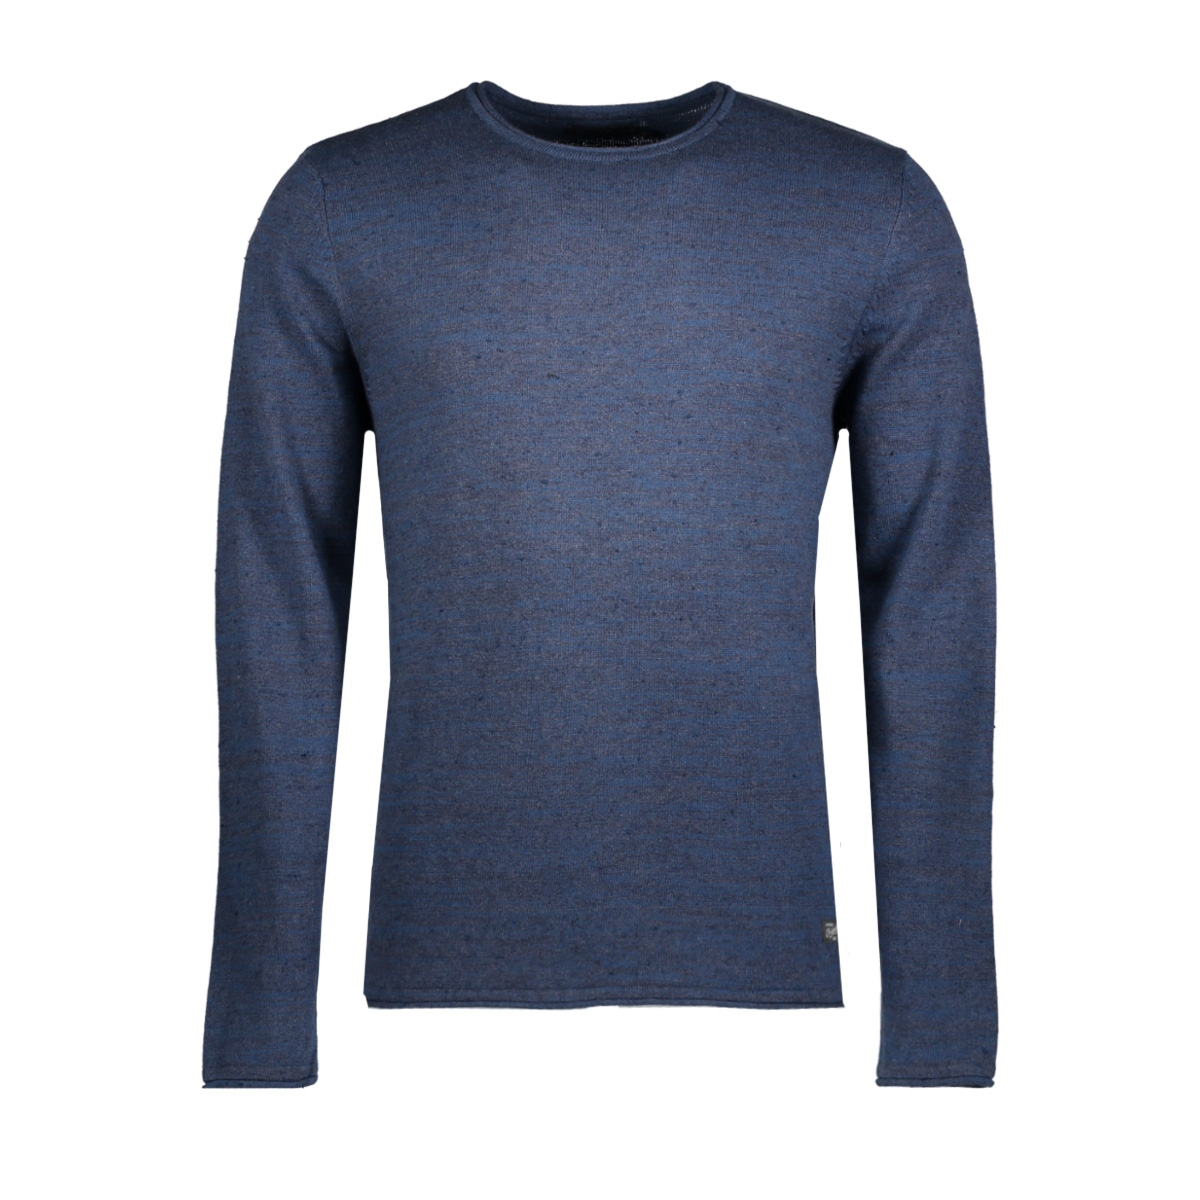 jorwills knit crew neck 12121991 jack & jones sweater ensign blue